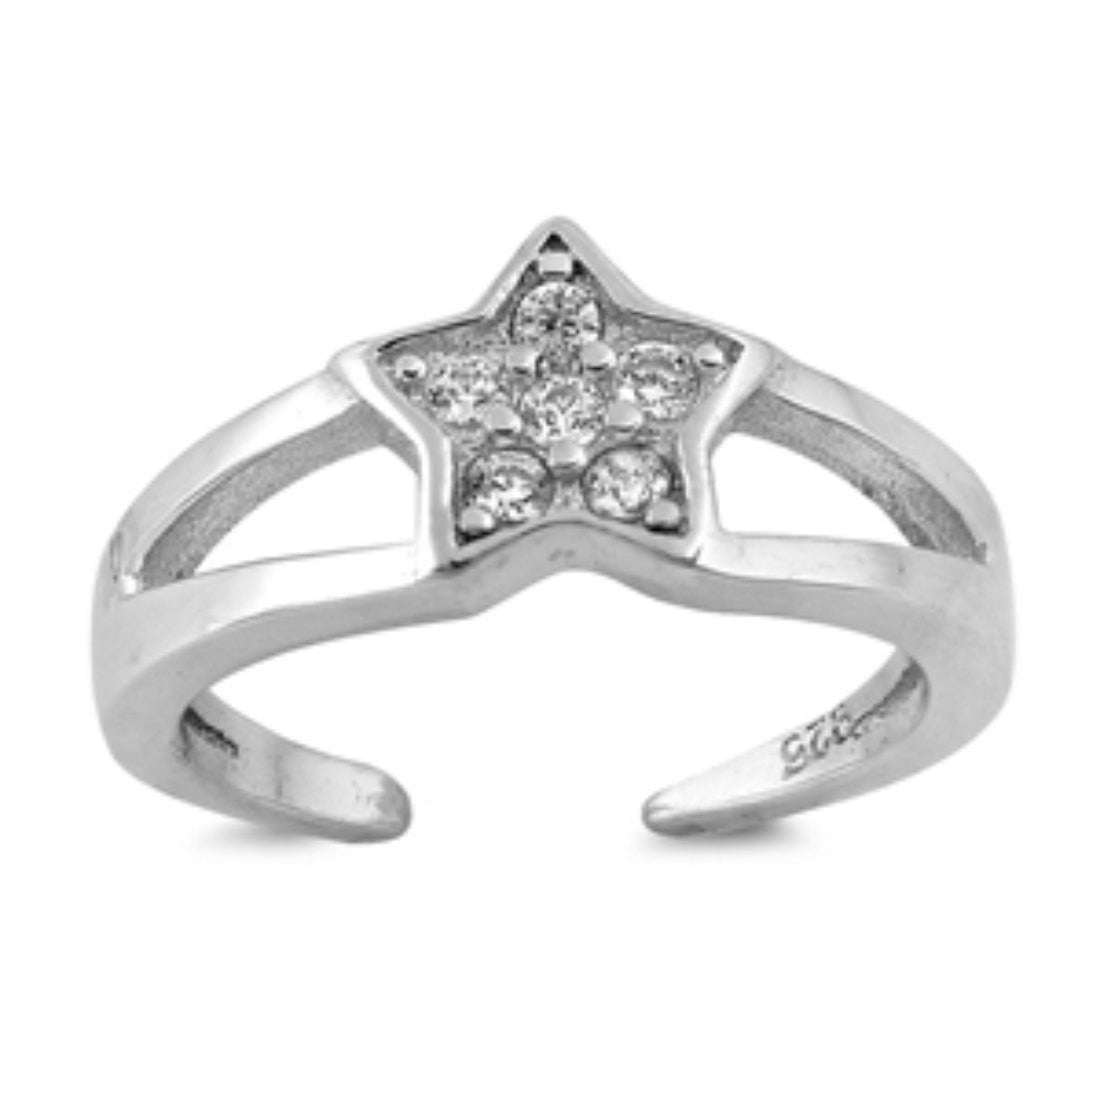 Toe Ring Silver Toe Ring Star Toe Ring Round Cubic Zirconia Split Open Shank Solid 925 Sterling Silver Star, Galaxy, 7mm Adjustable - Blue Apple Jewelry